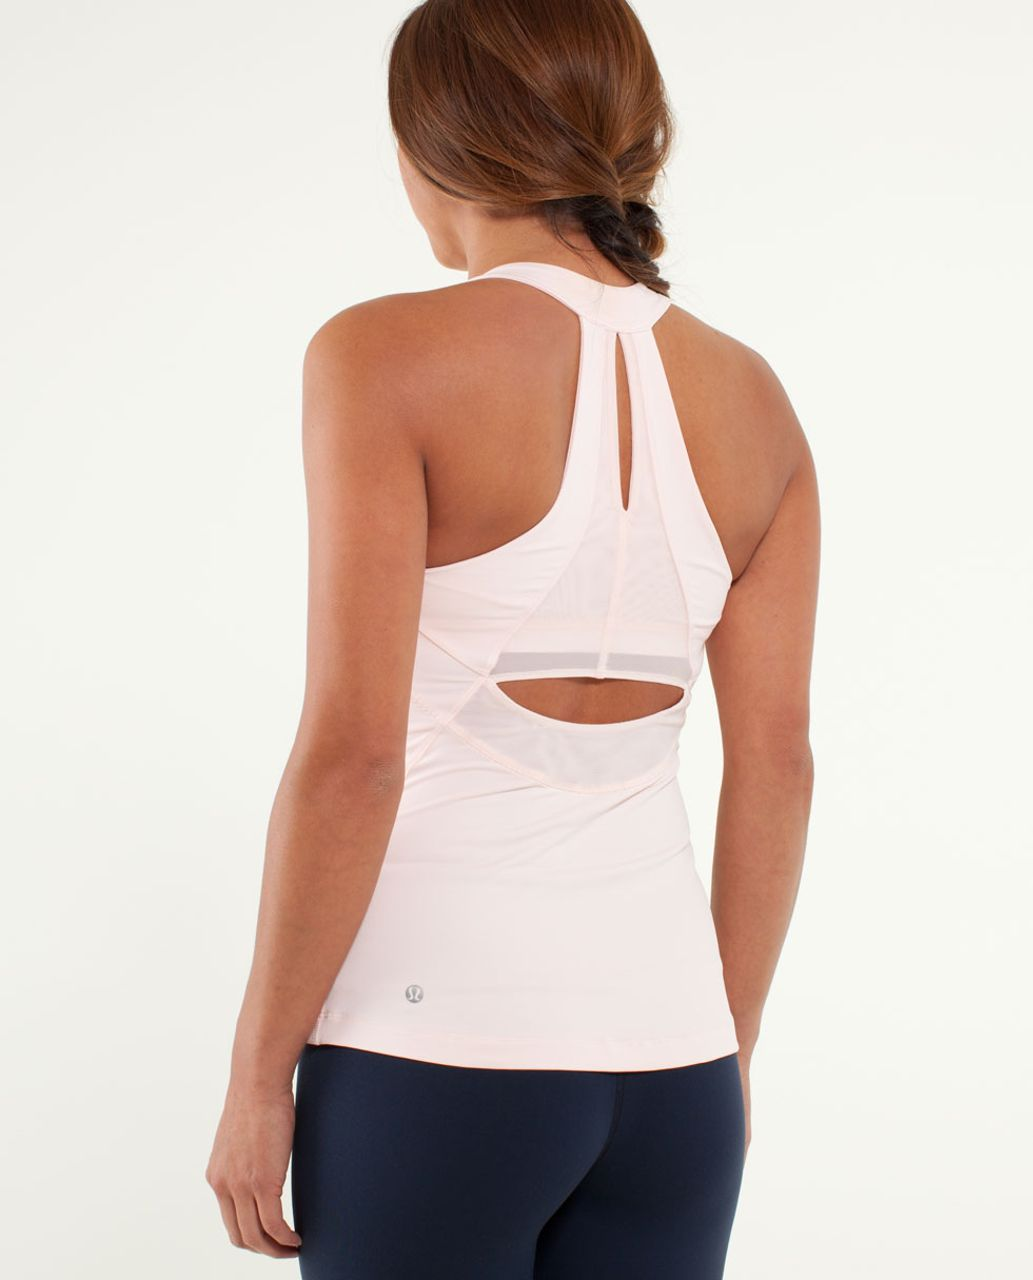 Lululemon Run:  Make It Count Tank - Parfait Pink